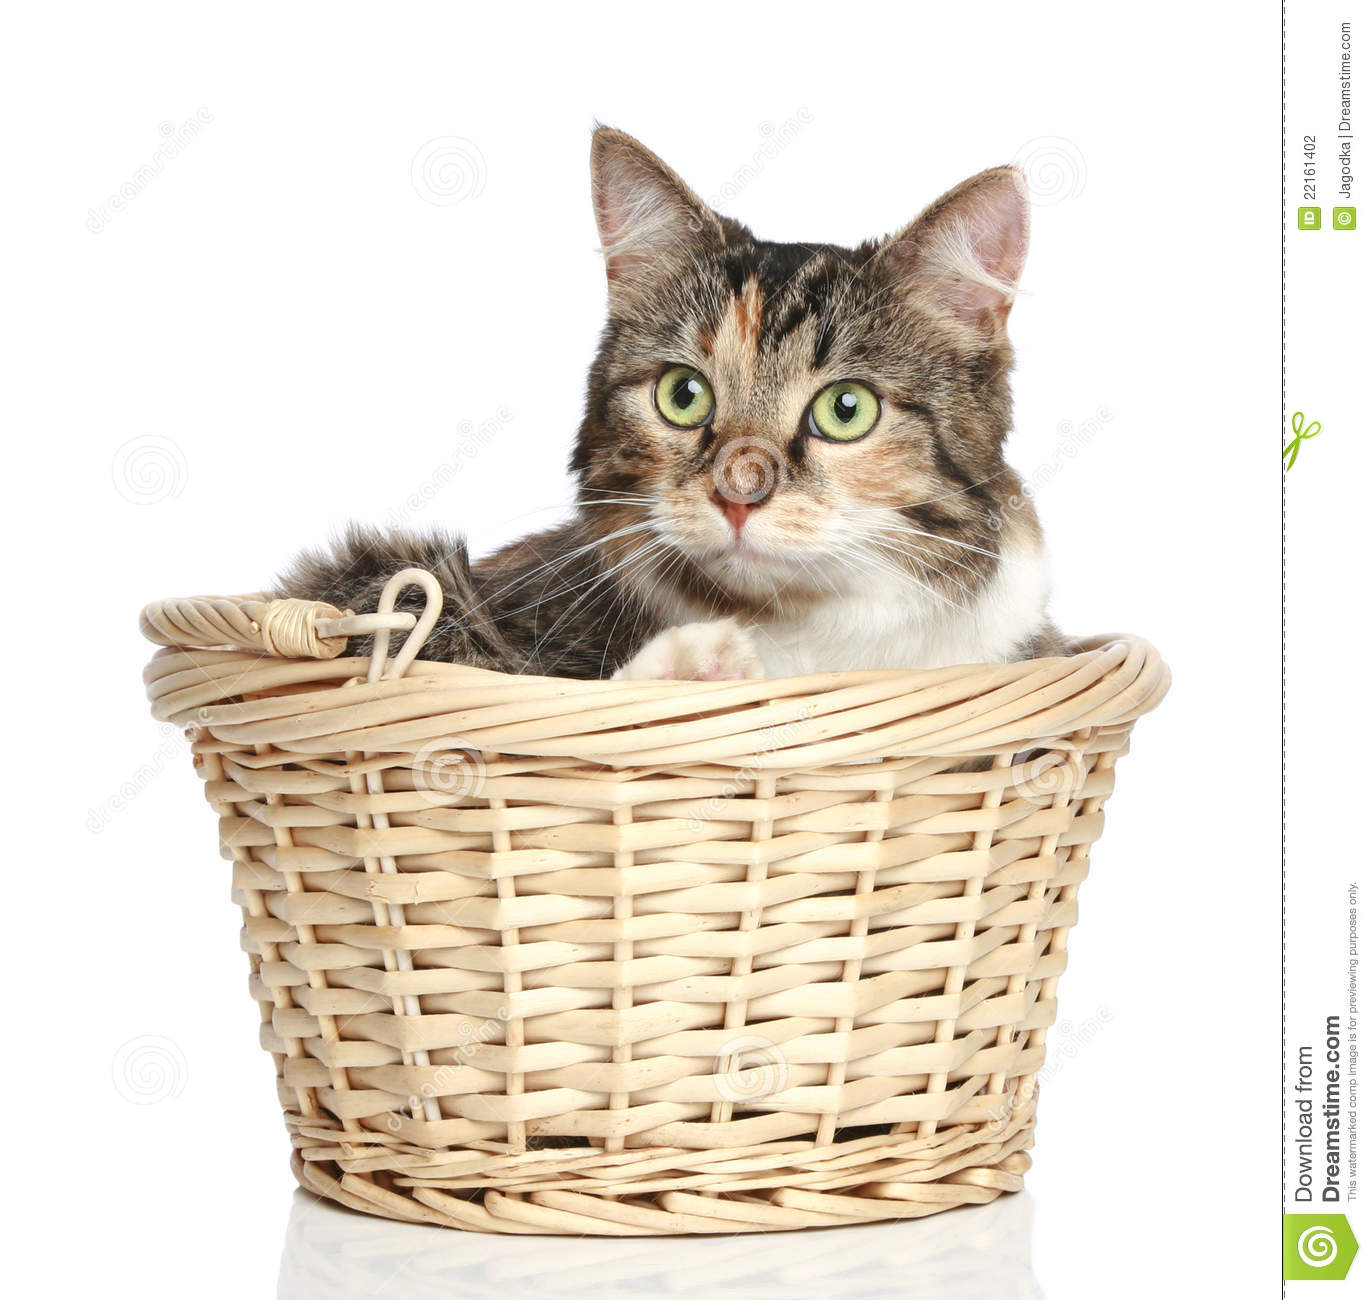 Cat Basket Clipart : Mixed breed cat in basket stock photography image